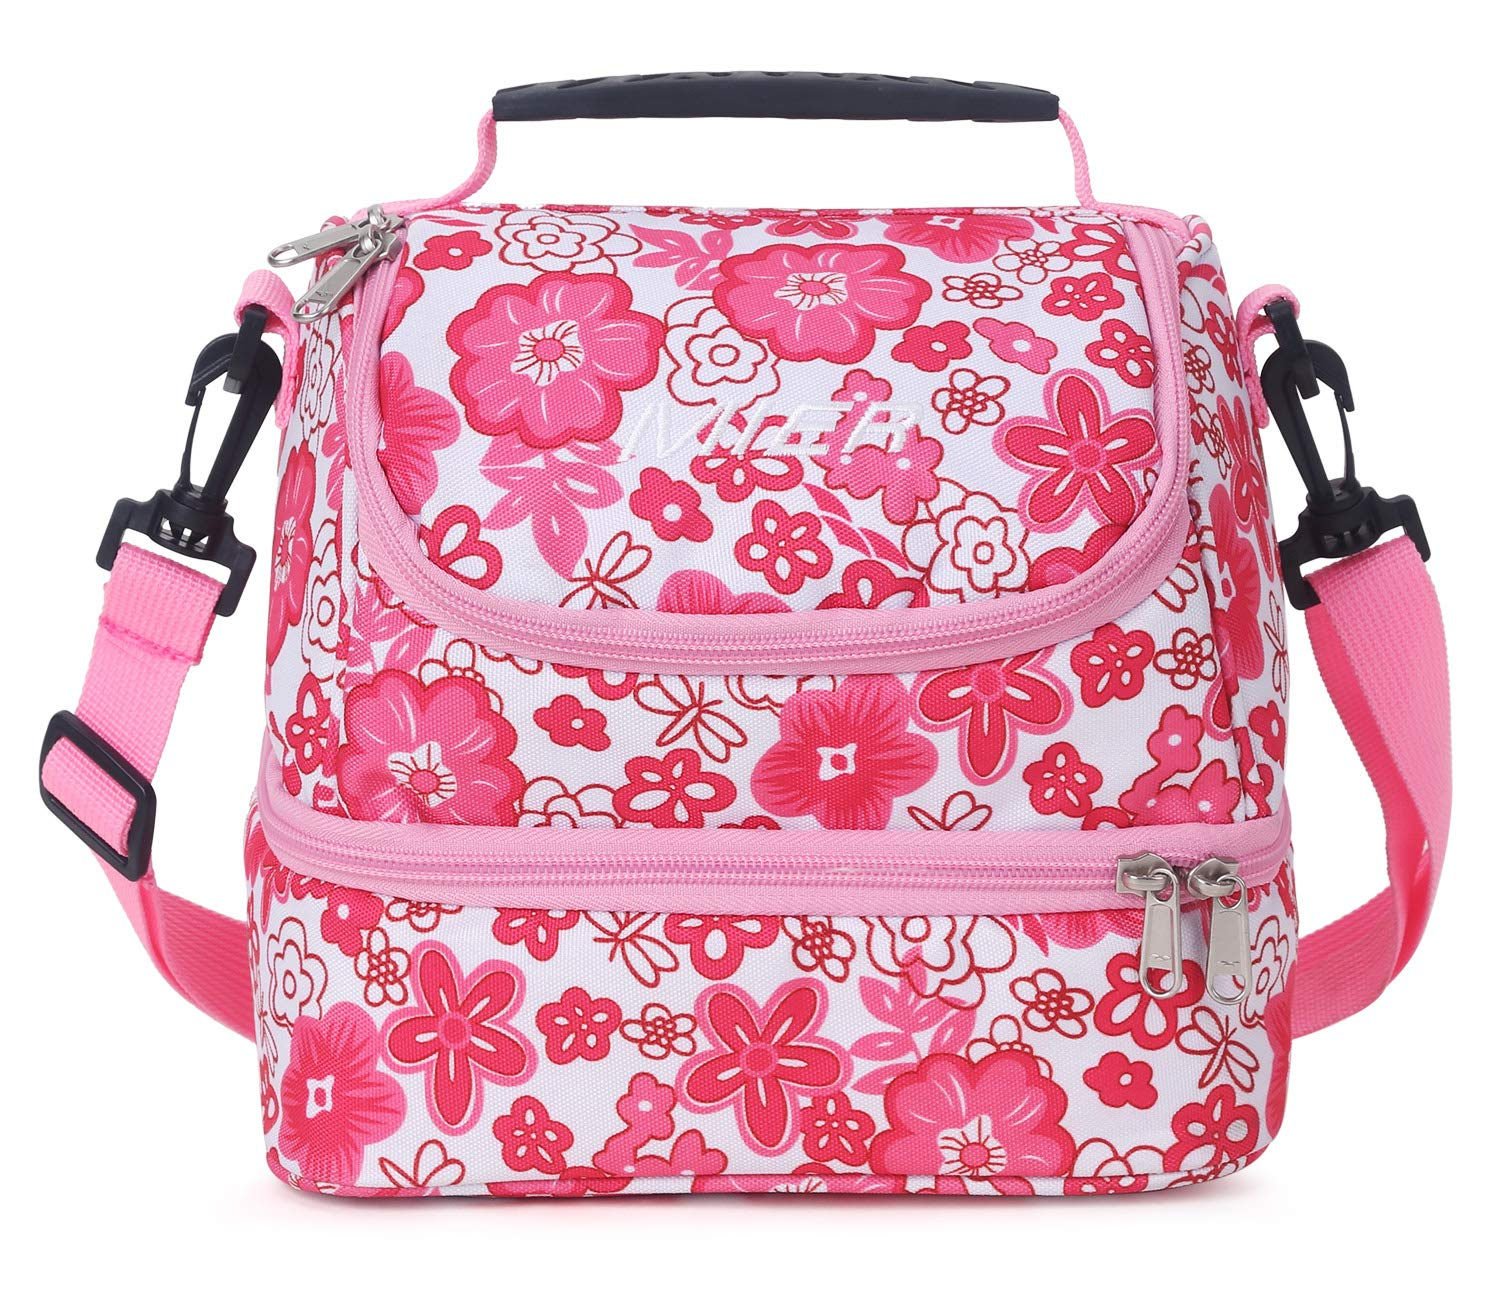 MIER Double Decker Insulated Lunch Box Pink Soft Cooler Bag Thermal Lunch Tote with Shoulder Strap (Pink Flower) by MIER